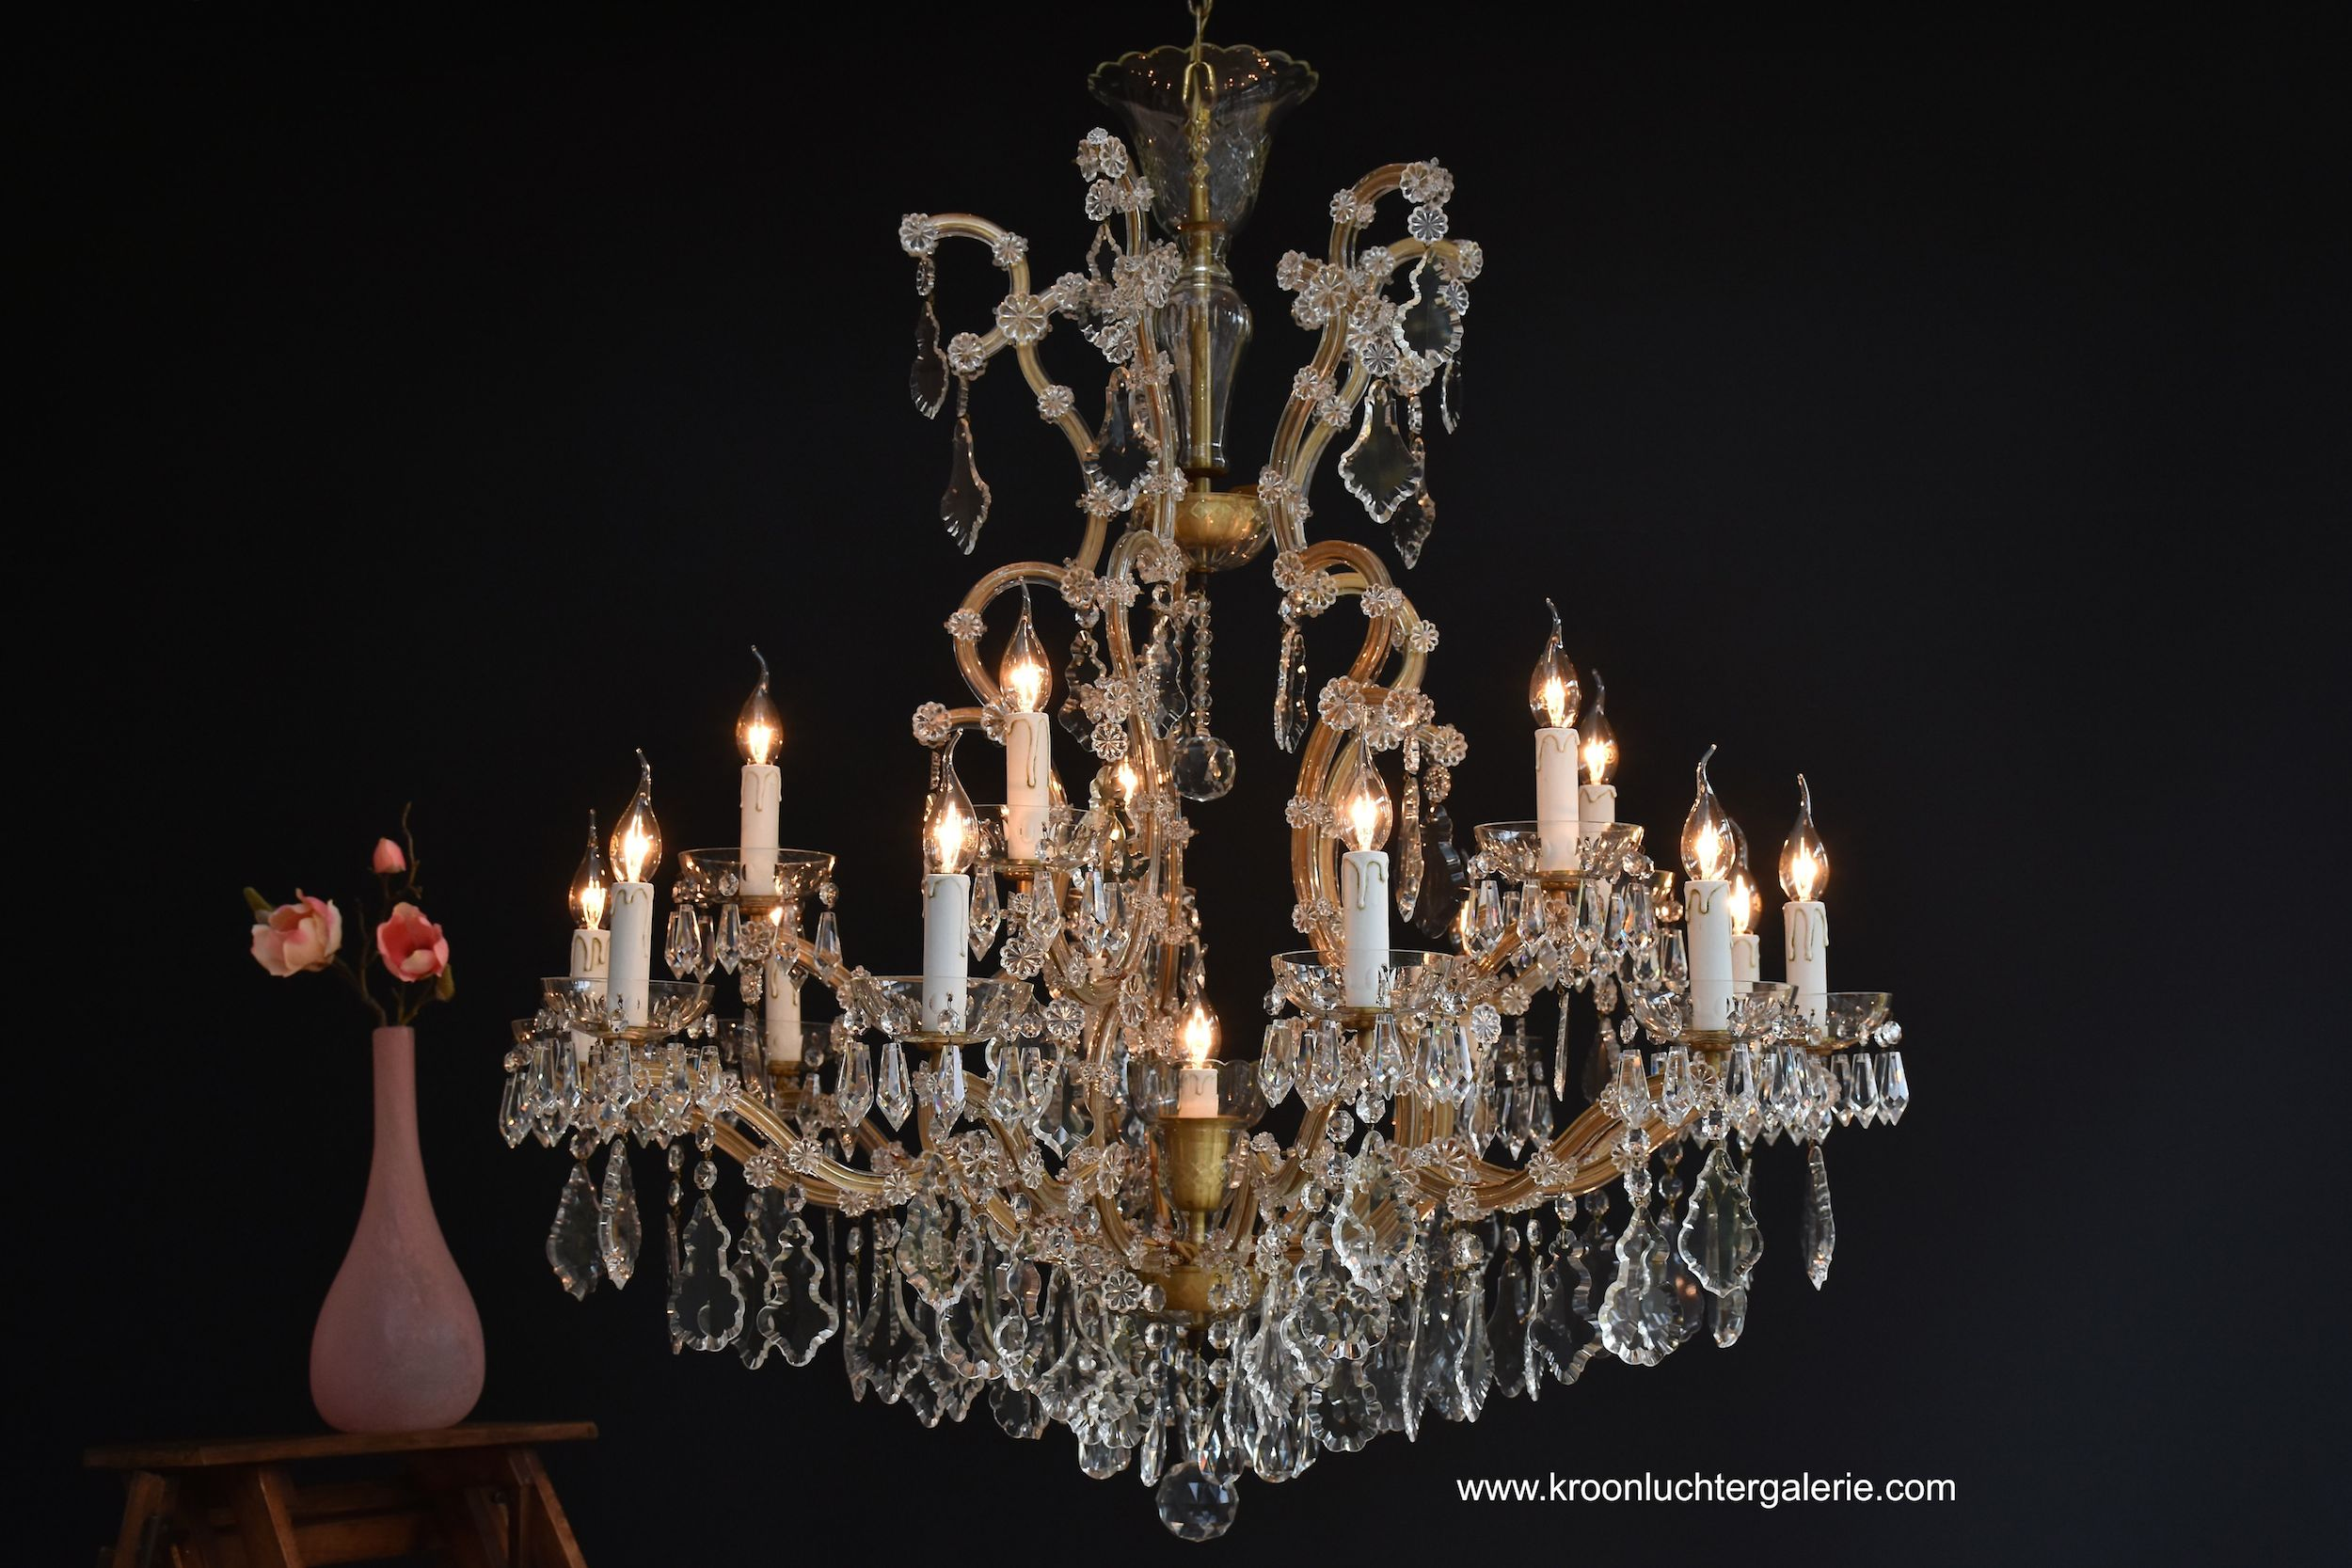 Large chandelier 'Maria Theresia' with 16 light, Ref. 574